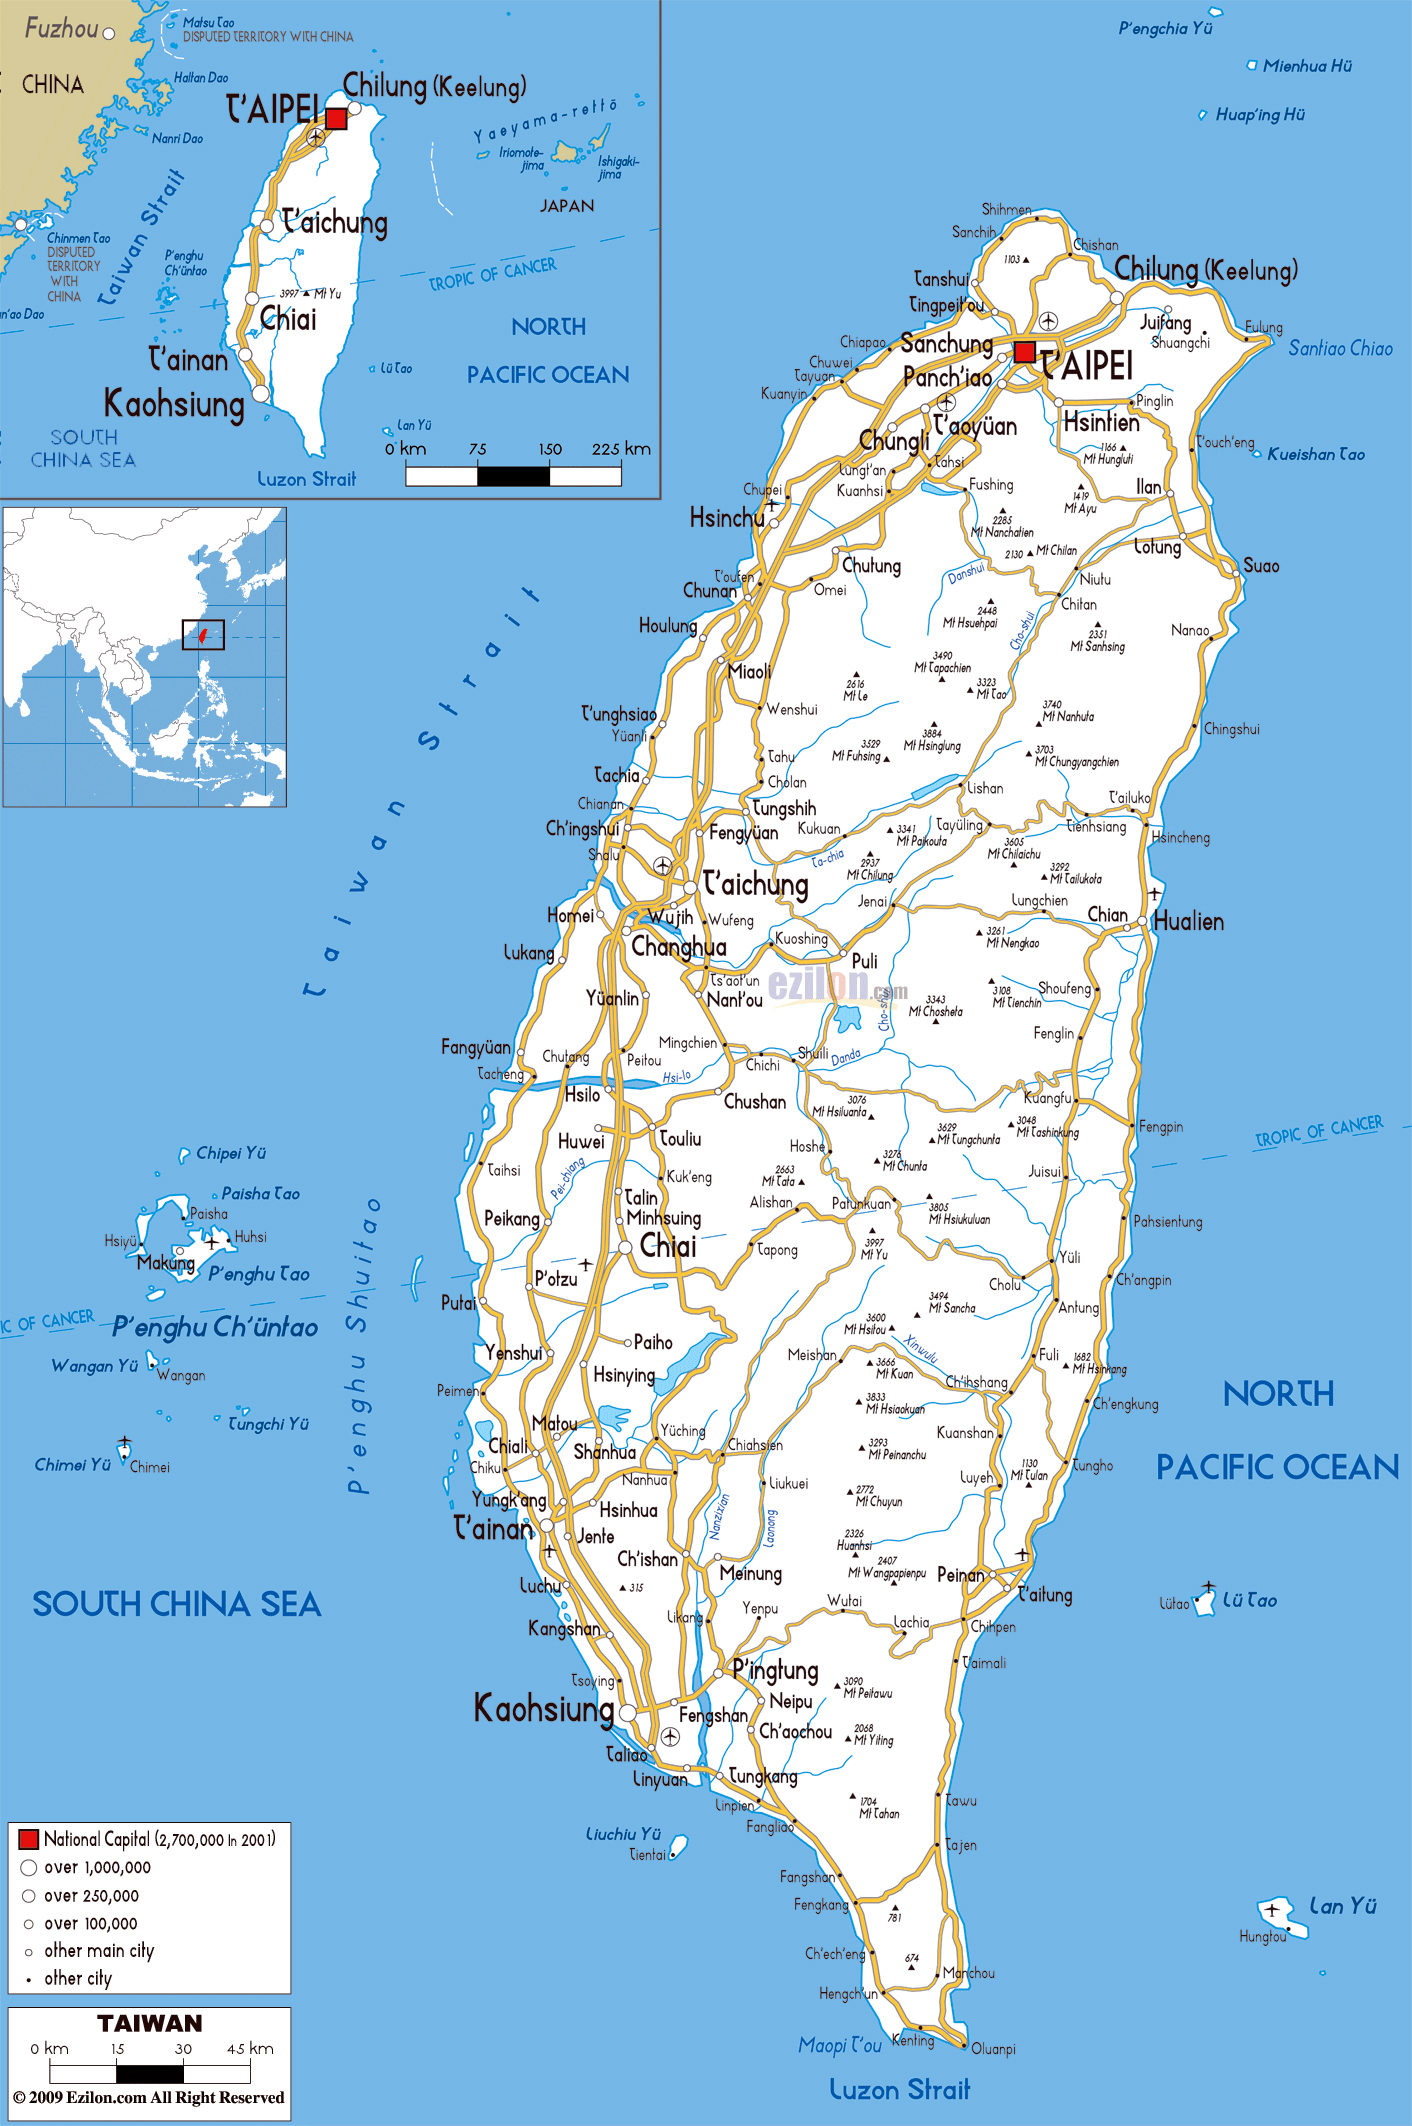 Map Of Asia Taiwan.Large Road Map Of Taiwan With Cities And Airports Taiwan Asia